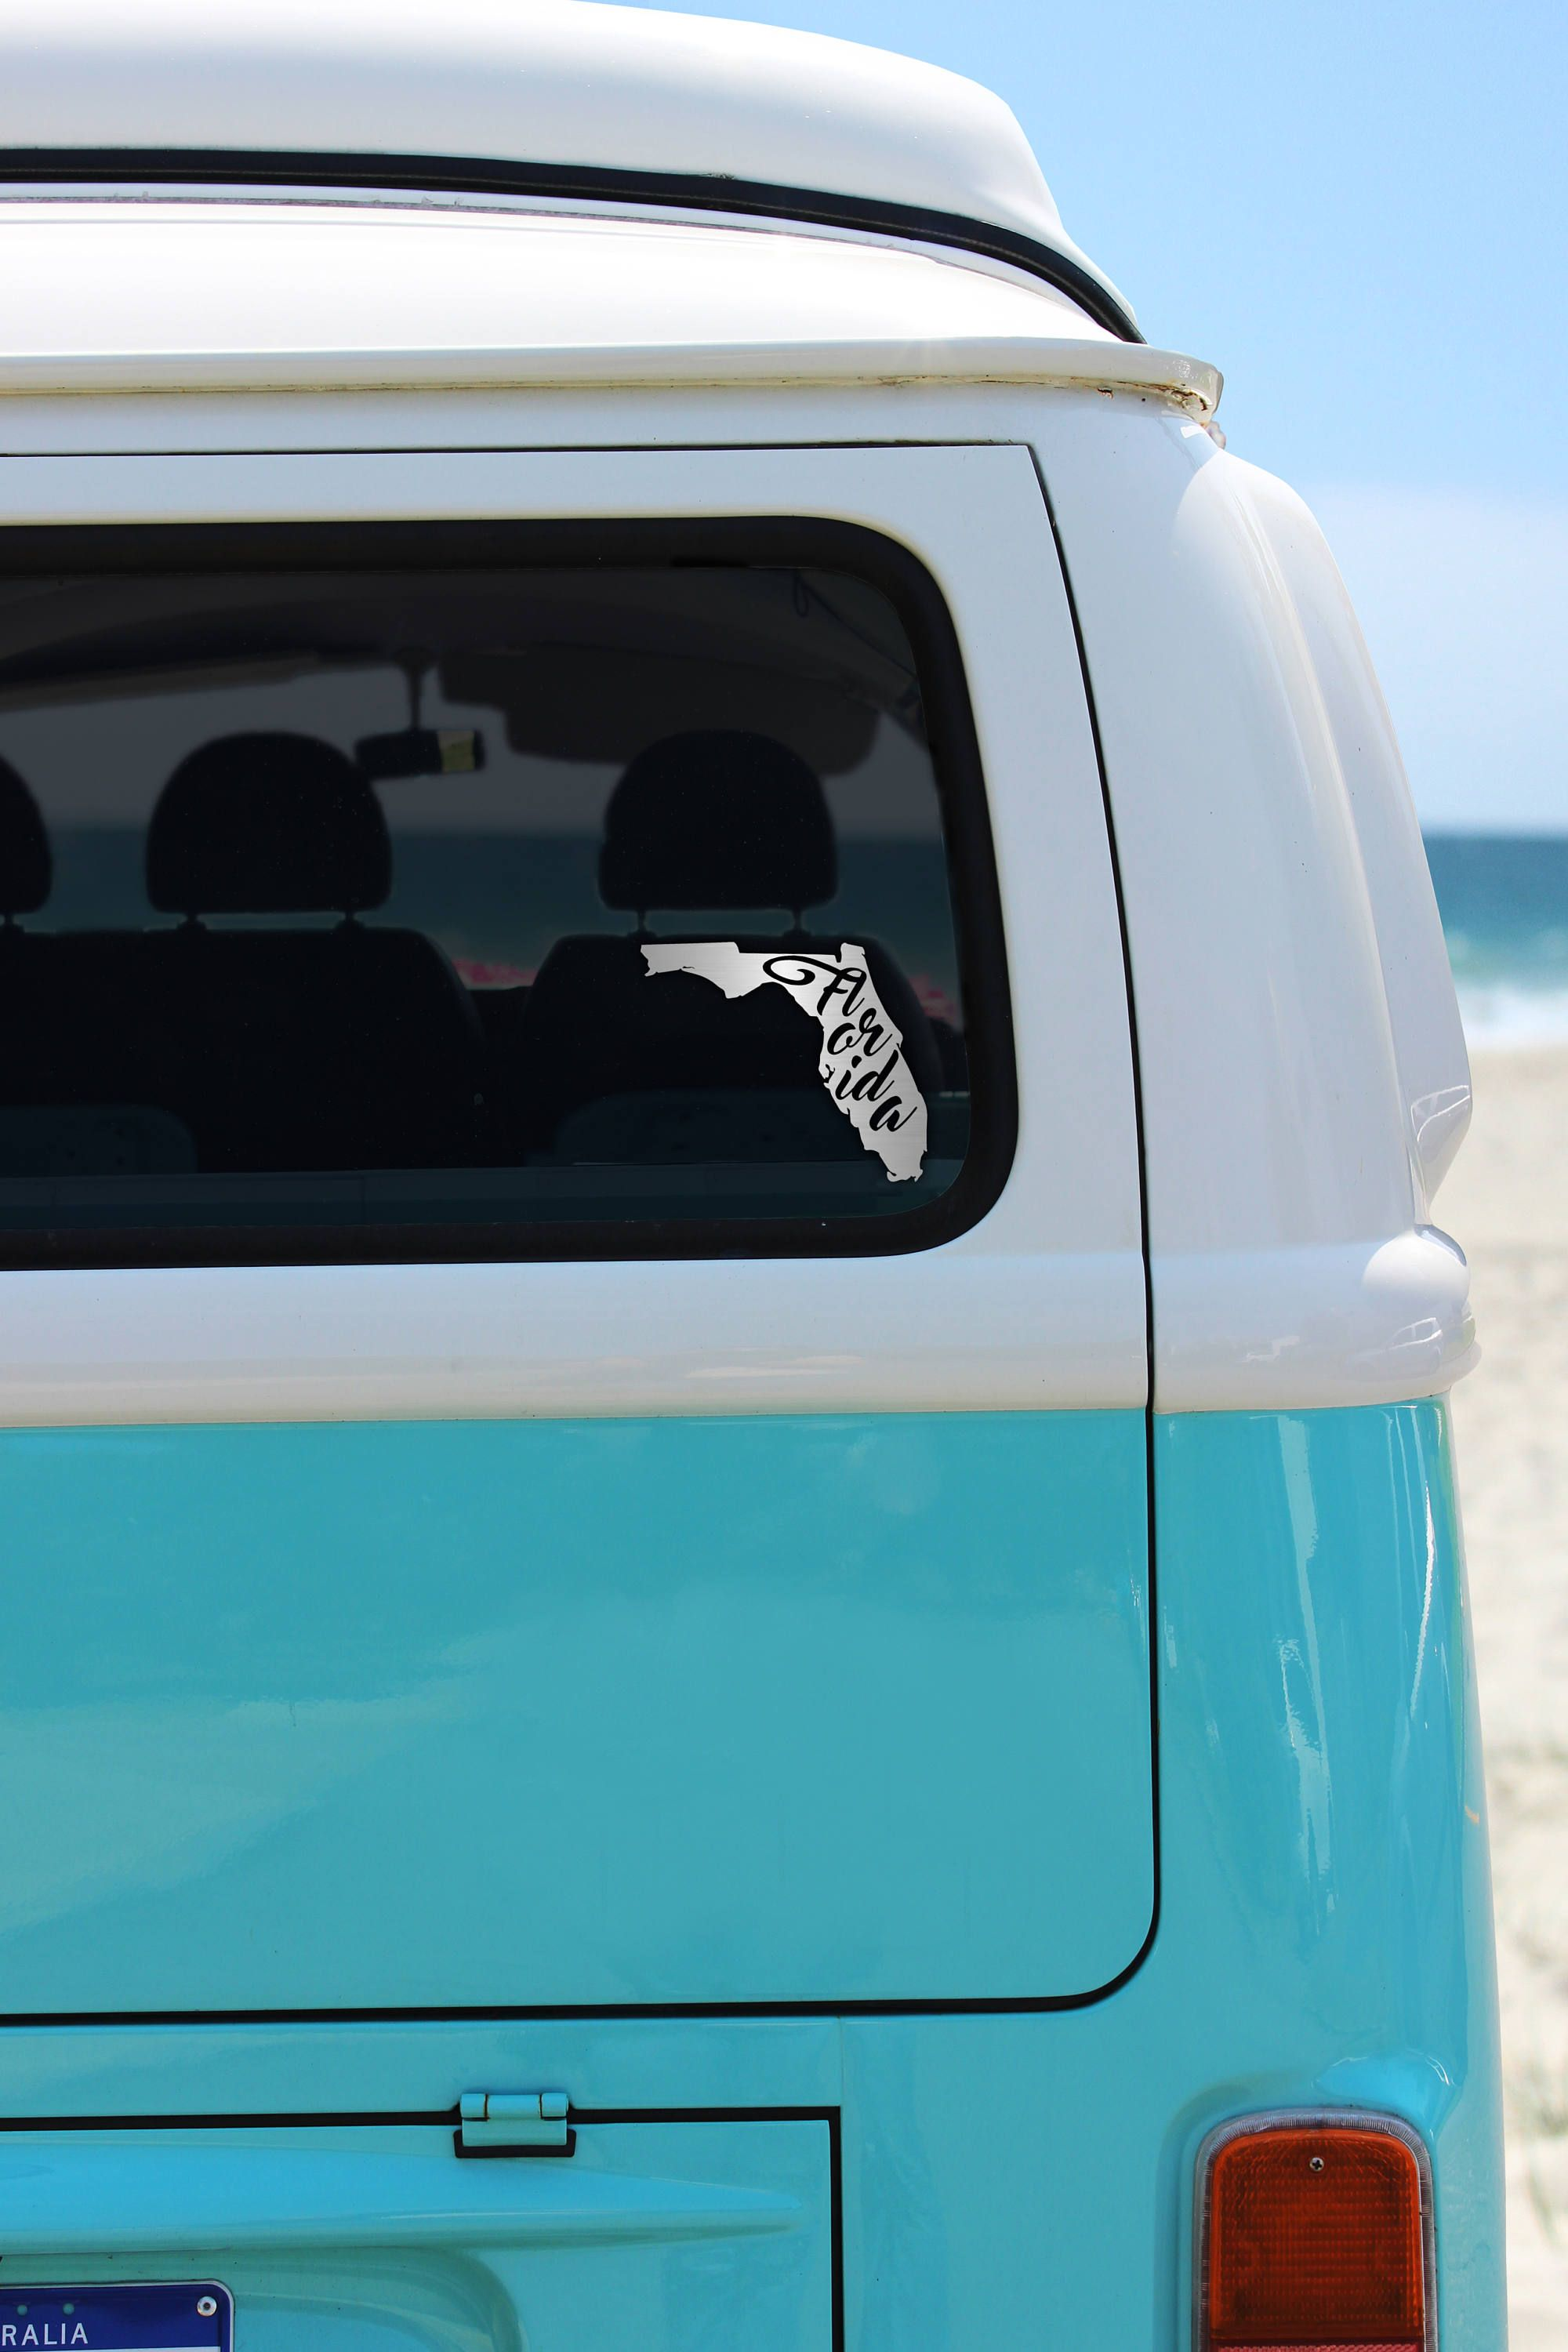 Florida Car Decal Removable Vinyl Car Decals Of Florida State Phone Decal Stickers Phone Decals Vinyl Decals [ 3000 x 2000 Pixel ]